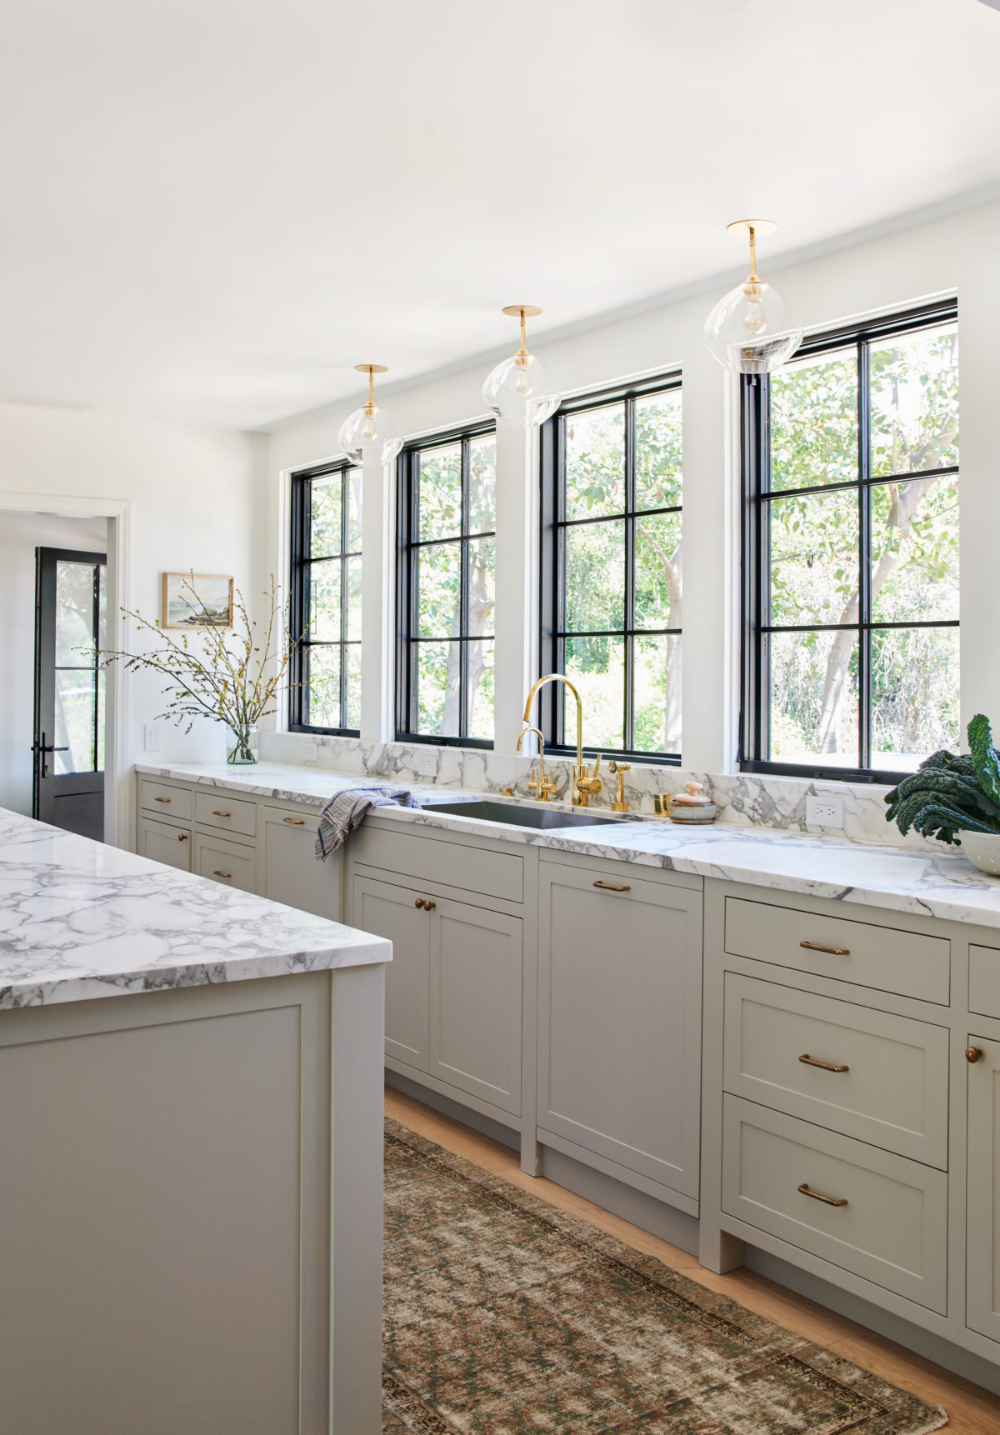 Client Canyon Cool Kitchen Cabinets Makeover Light Grey Kitchens Painted Kitchen Cabinets Colors